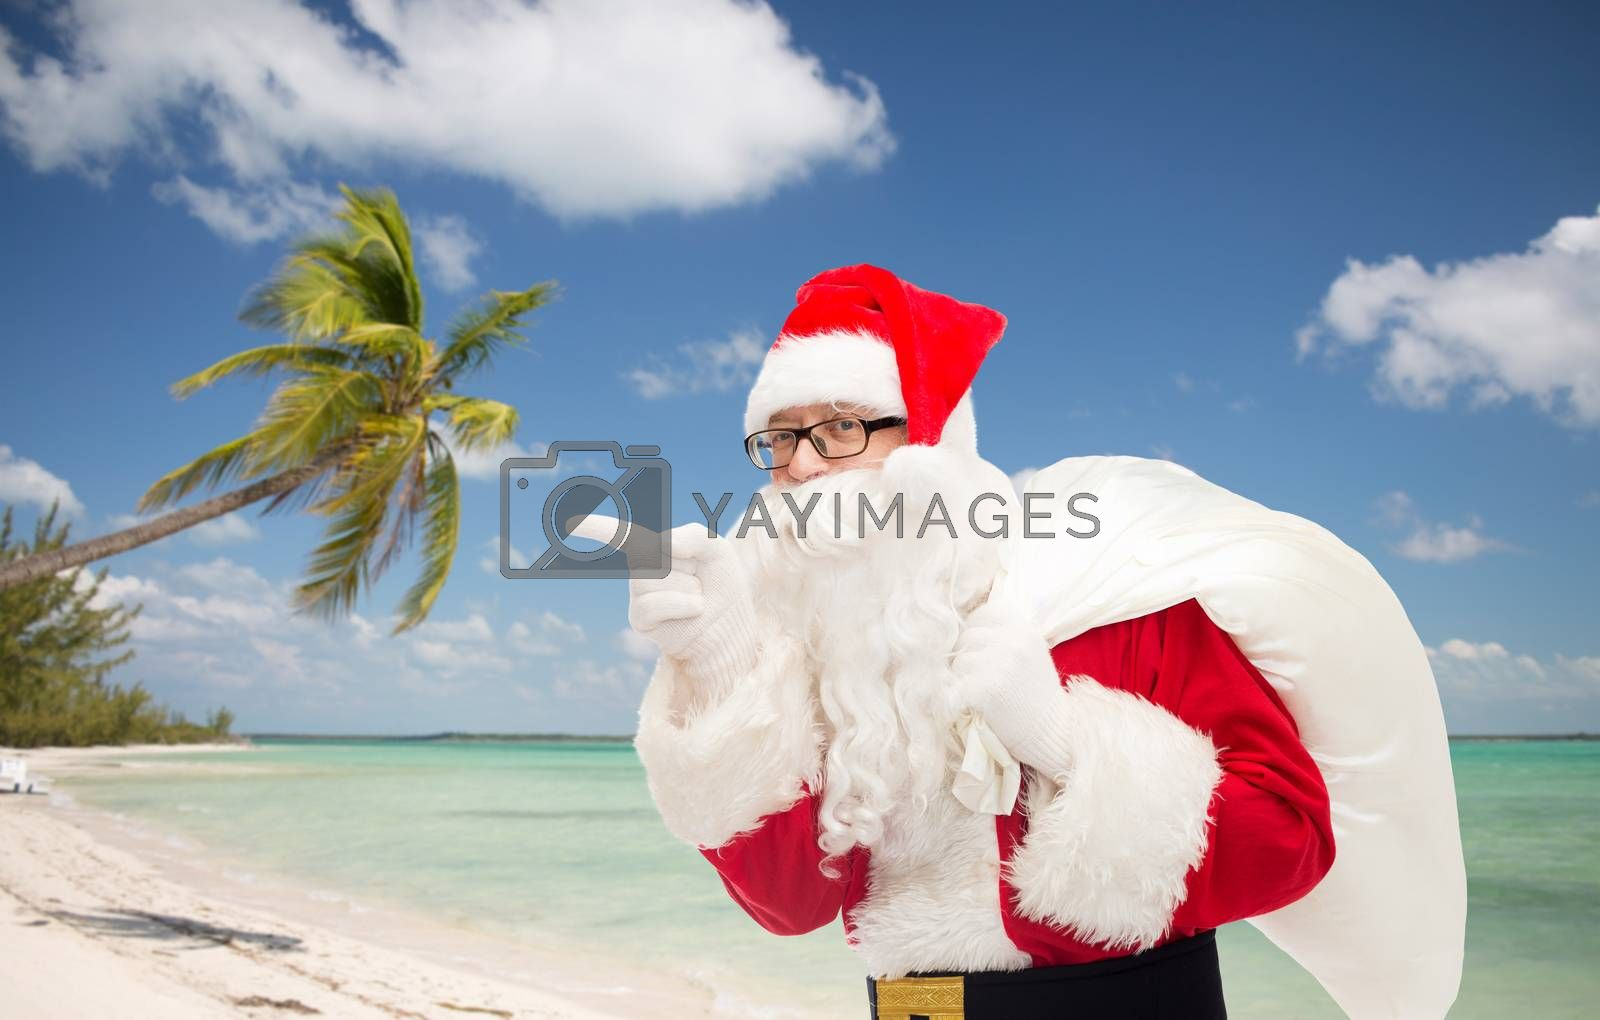 christmas, holidays, travel and people concept - man in costume of santa claus with bag pointing finger over tropical beach background